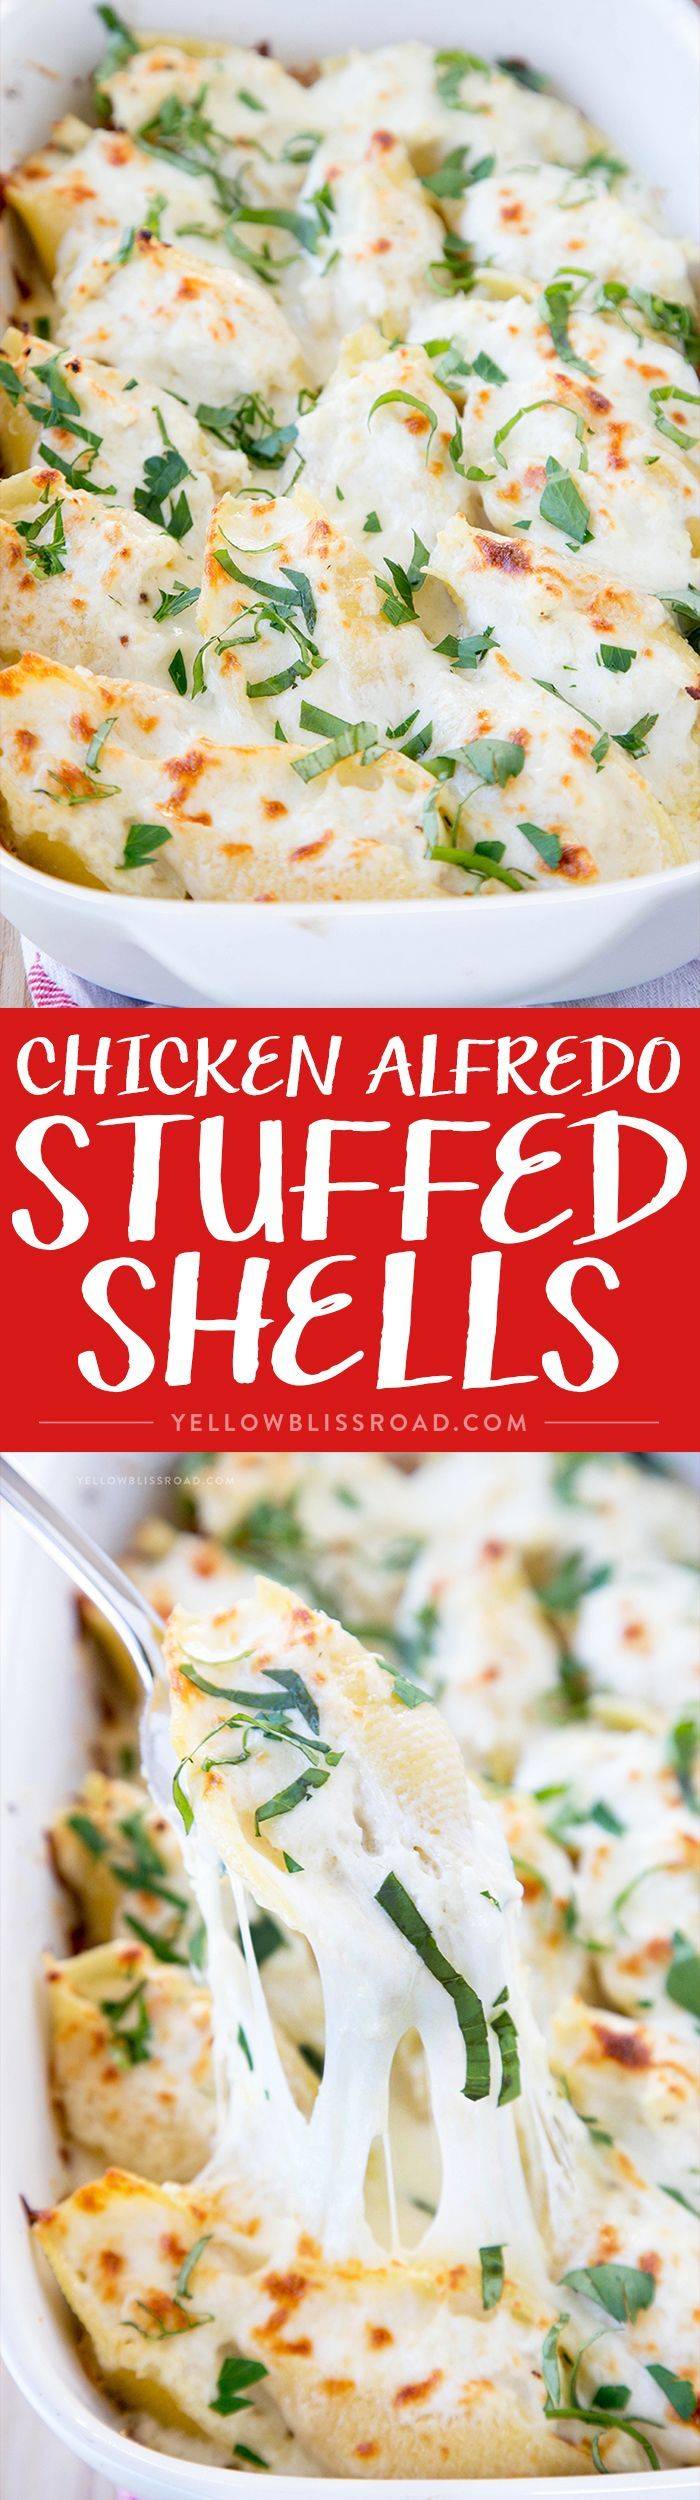 Chicken Alfredo Stuffed Shells - Creamy and rich pasta dish with a homemade simple Alfredo sauce, chicken Italian cheeses and ricotta.